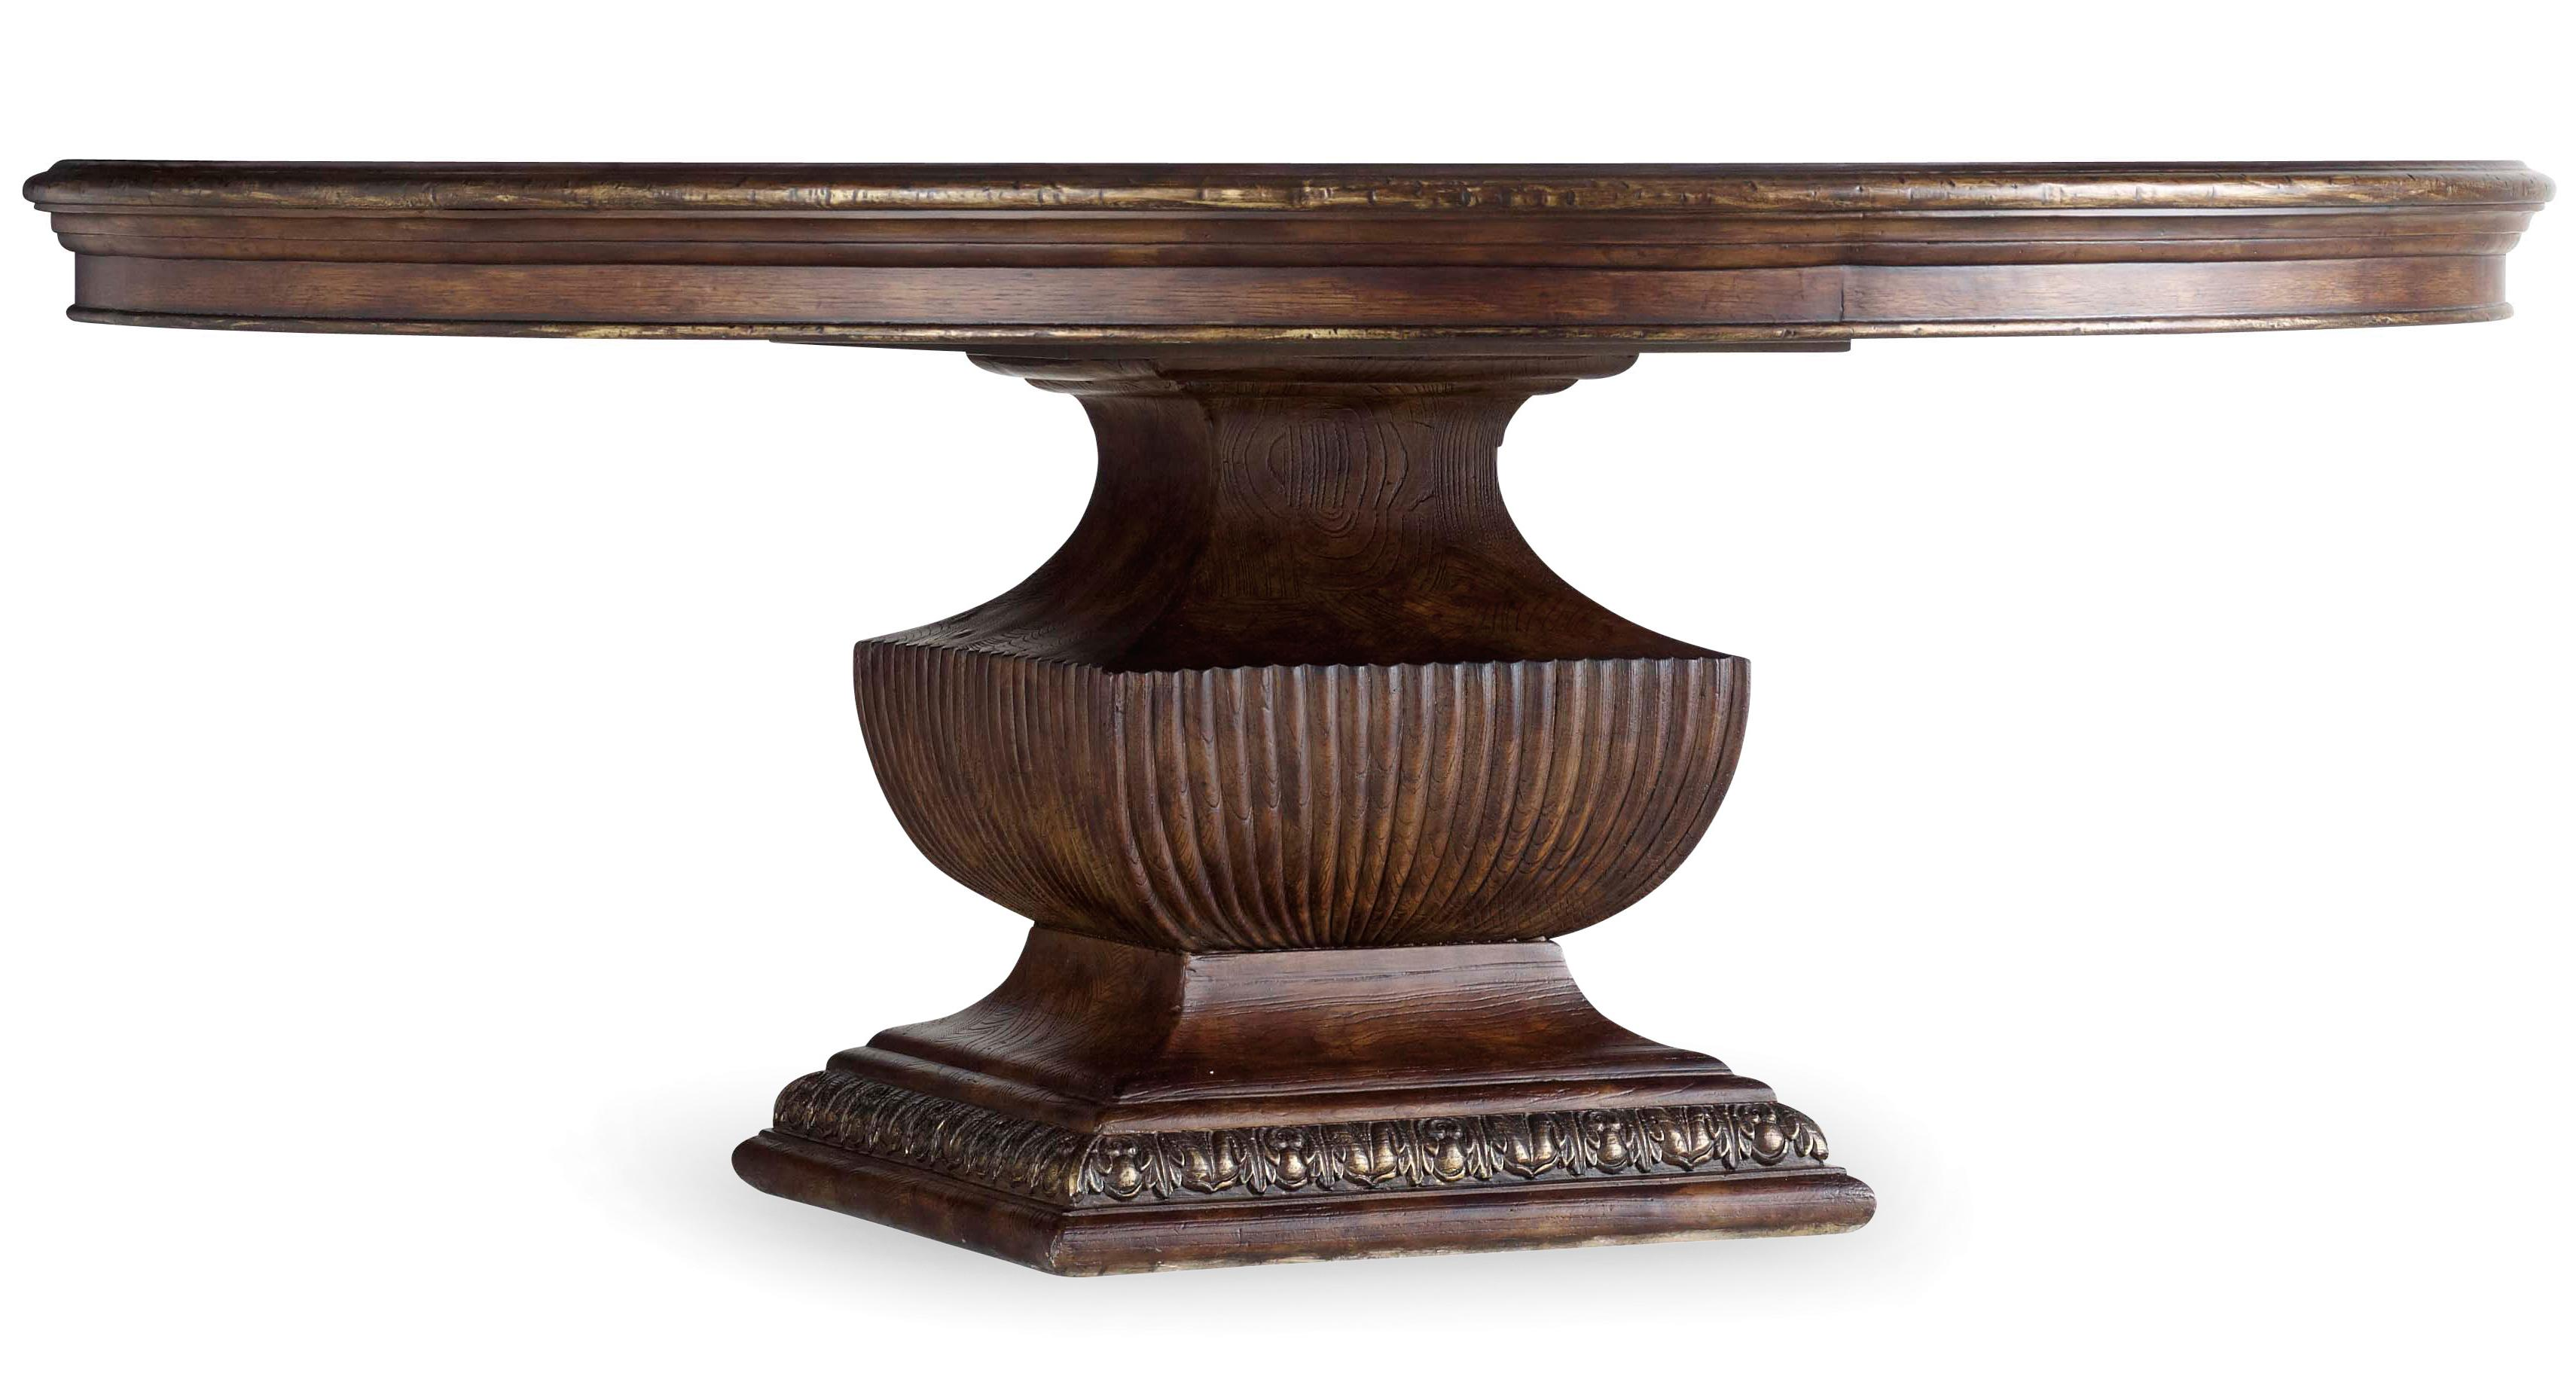 Hooker Furniture Adagio 72 Inch Urn Dining Table - Item Number: 5091-75213